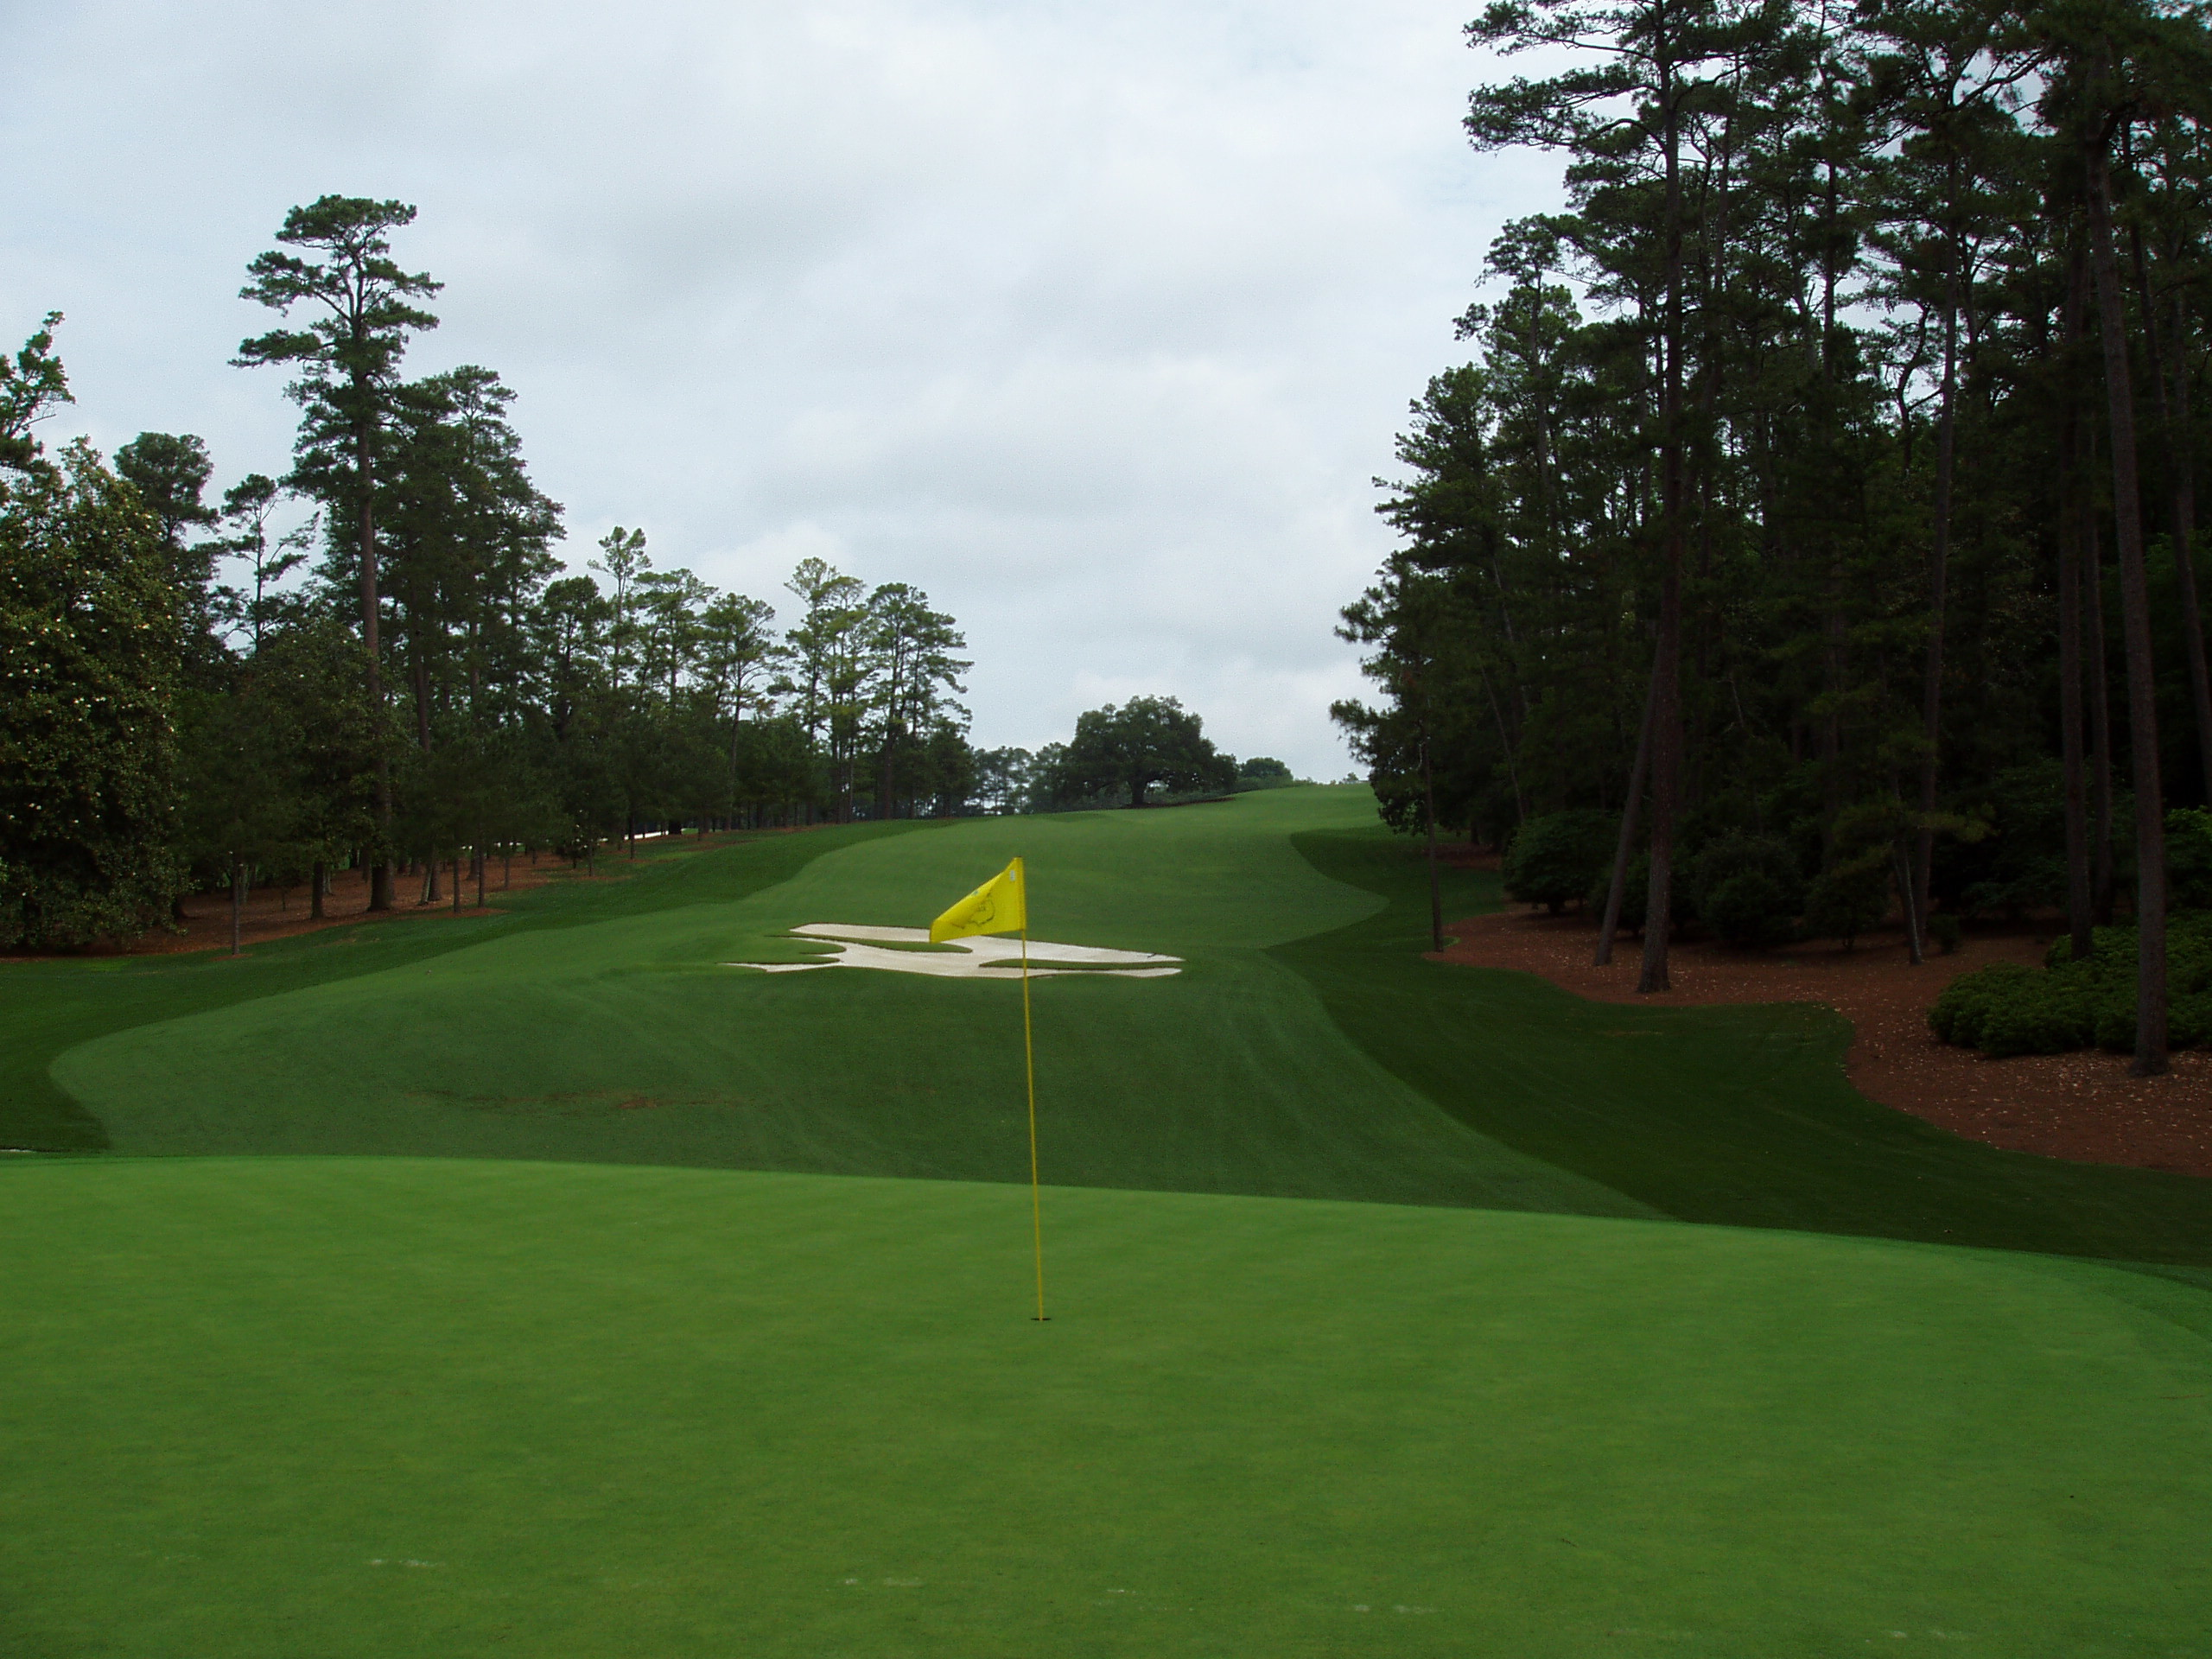 Res: 2560x1920, 3212x2133 augusta national golf course wallpaper golf club masters 2013